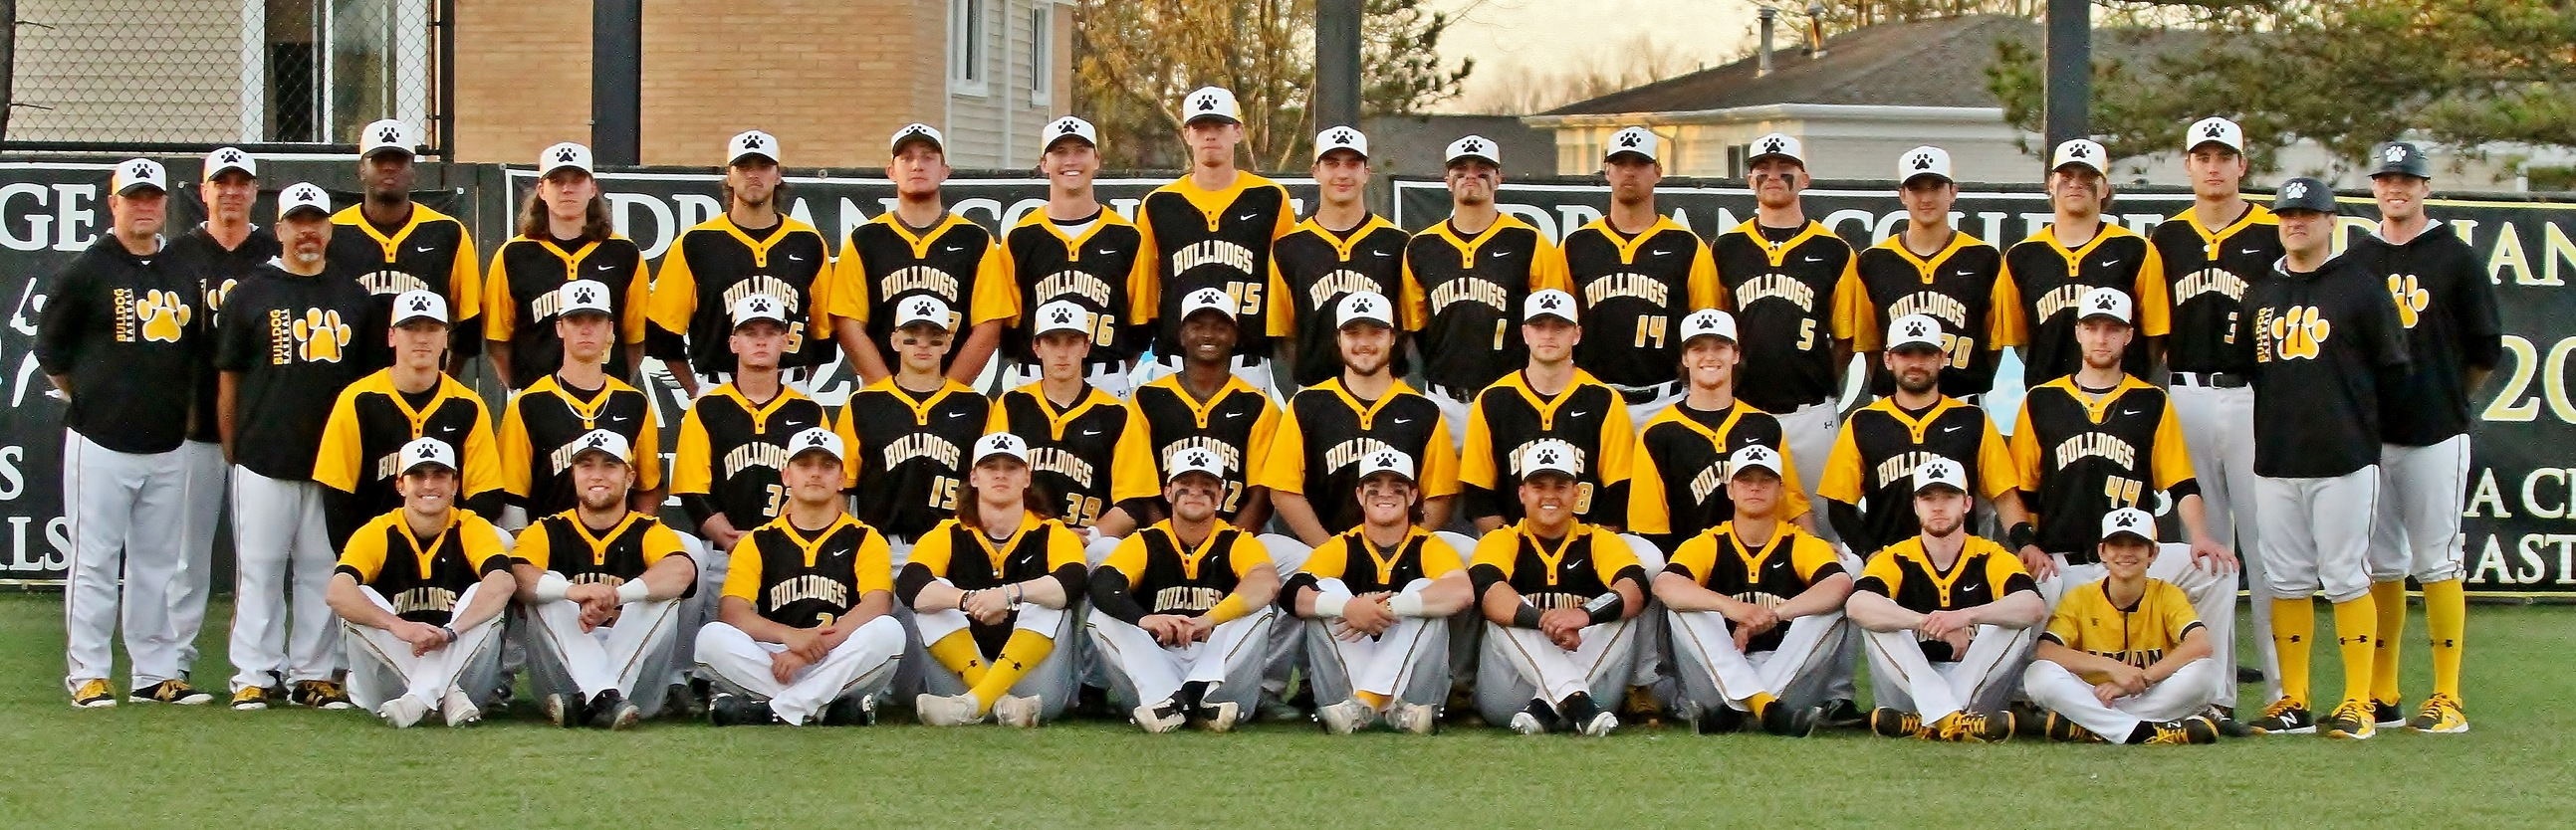 Season Ends for @AdrianBaseball with 4-0 Loss to Wabash in Mideast Regional Final Four